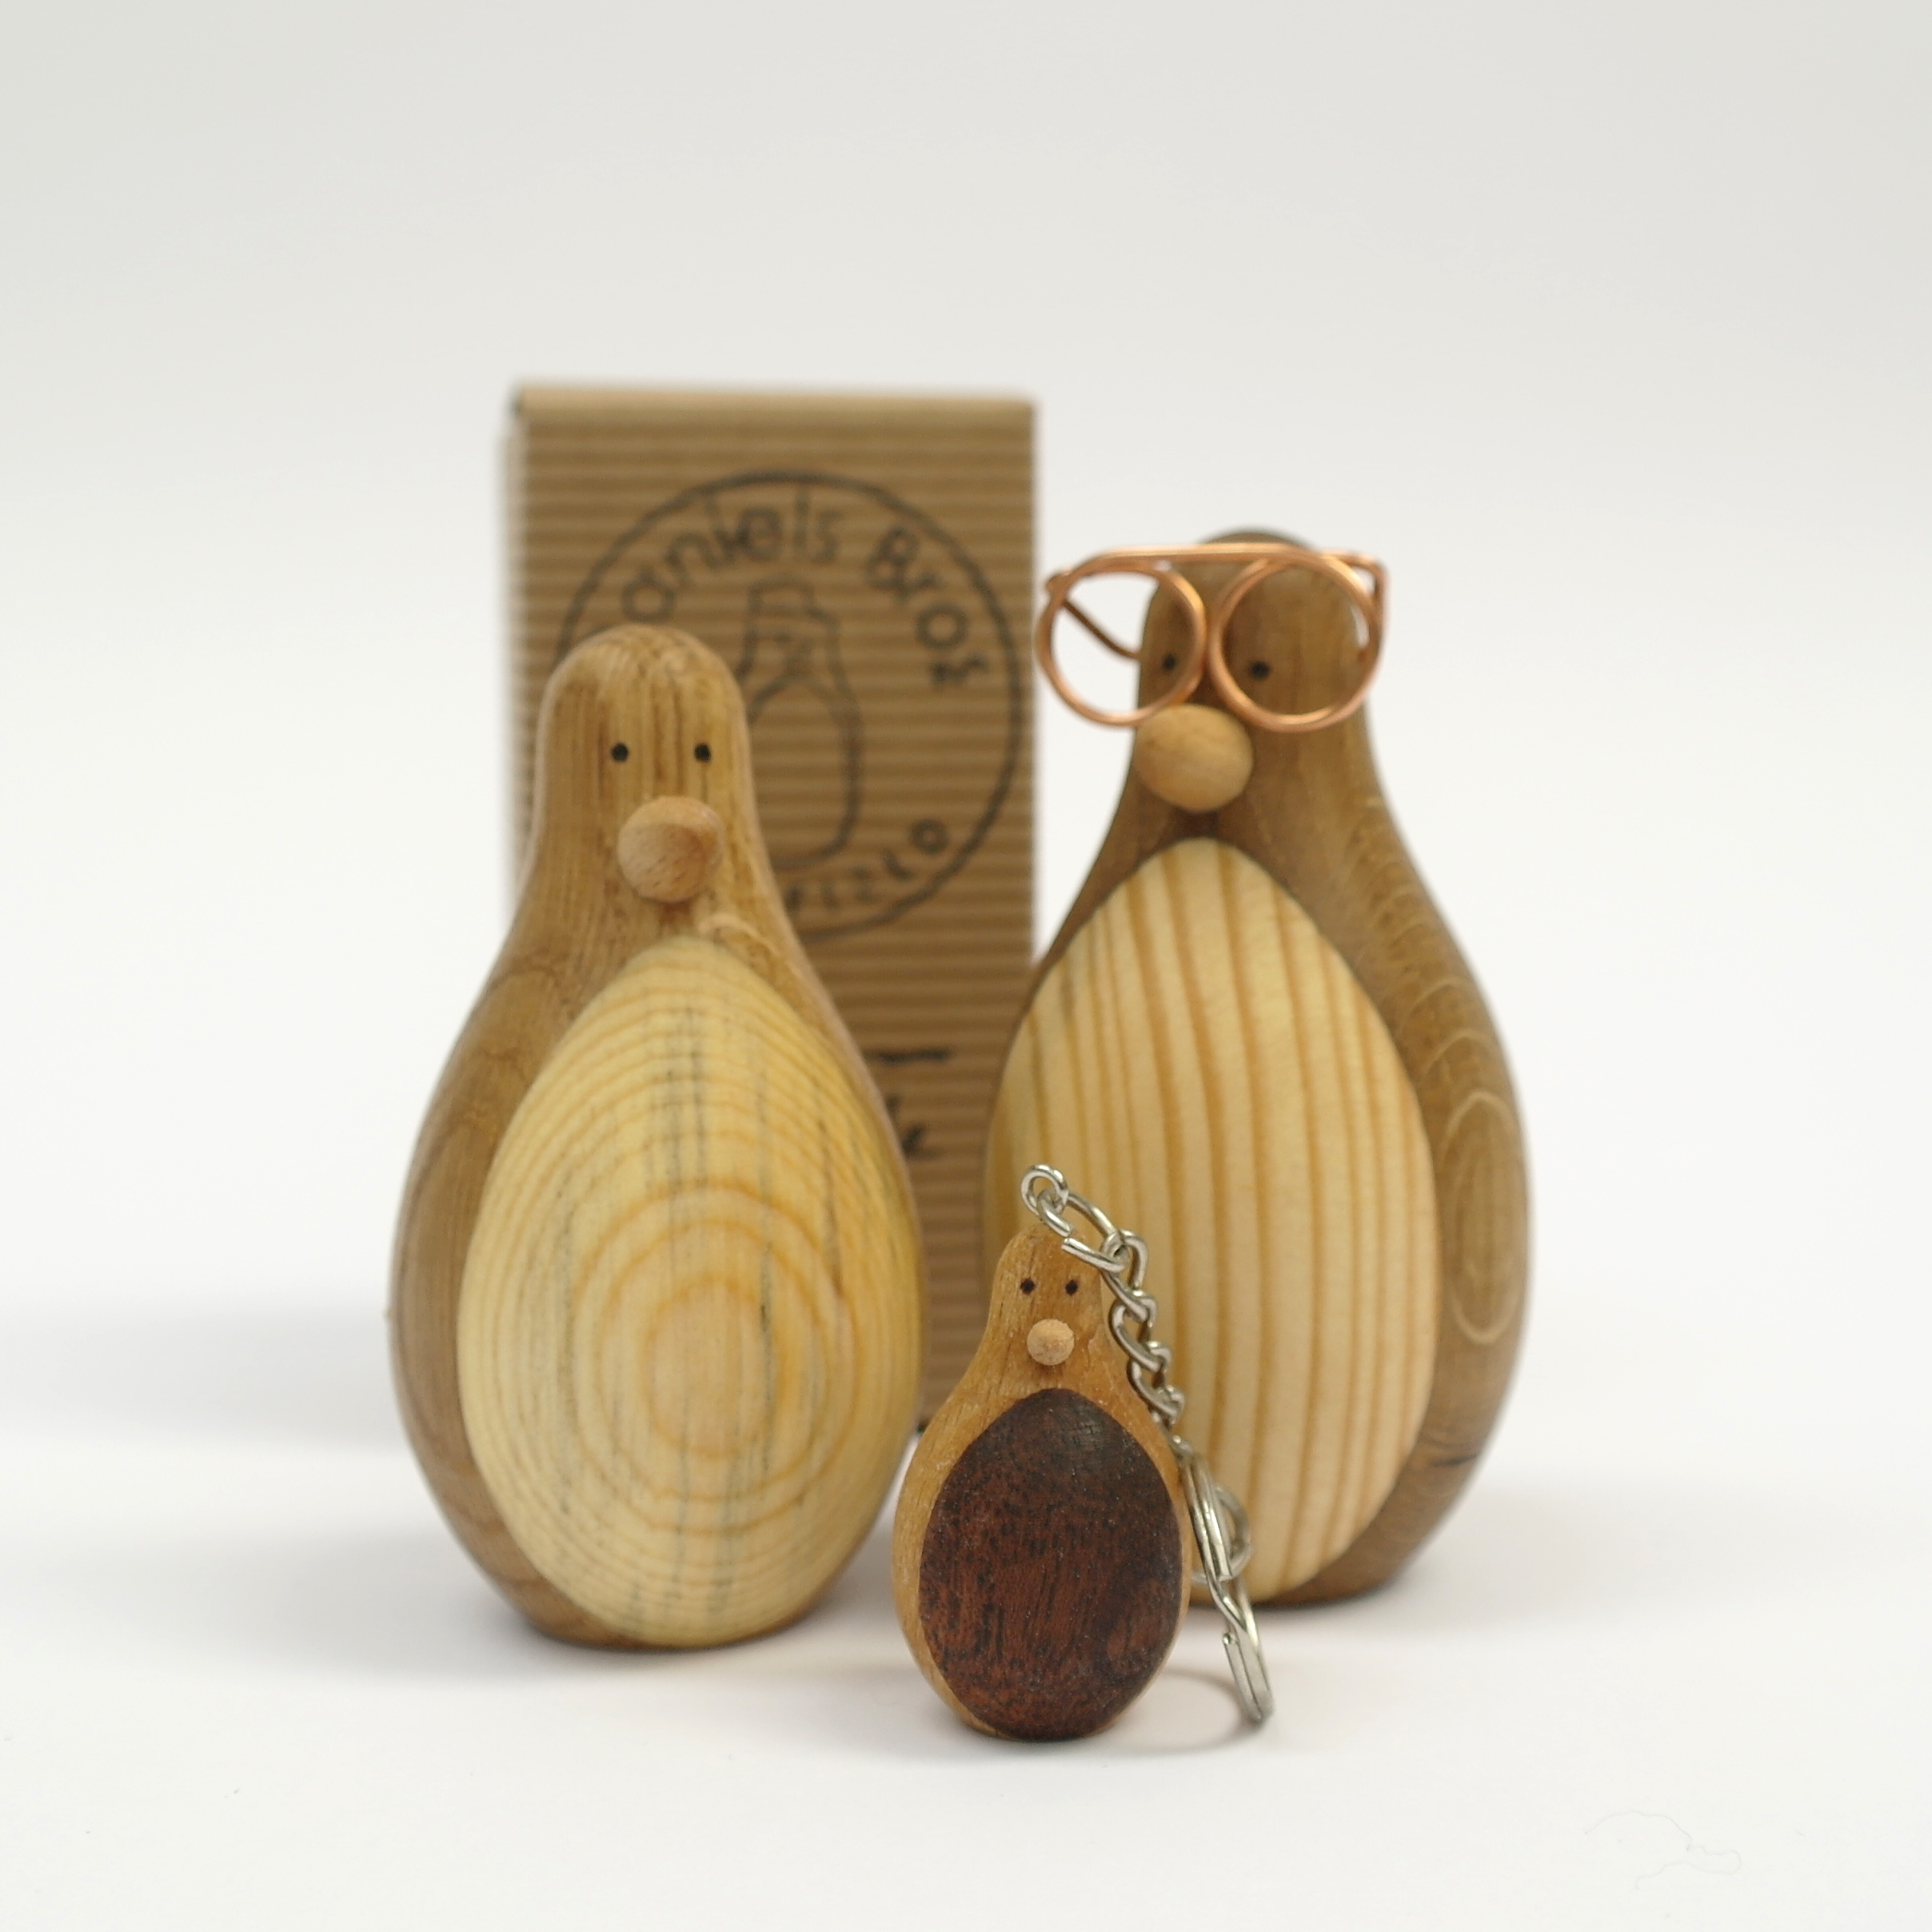 Hipster Wooden Penguin with Glasses